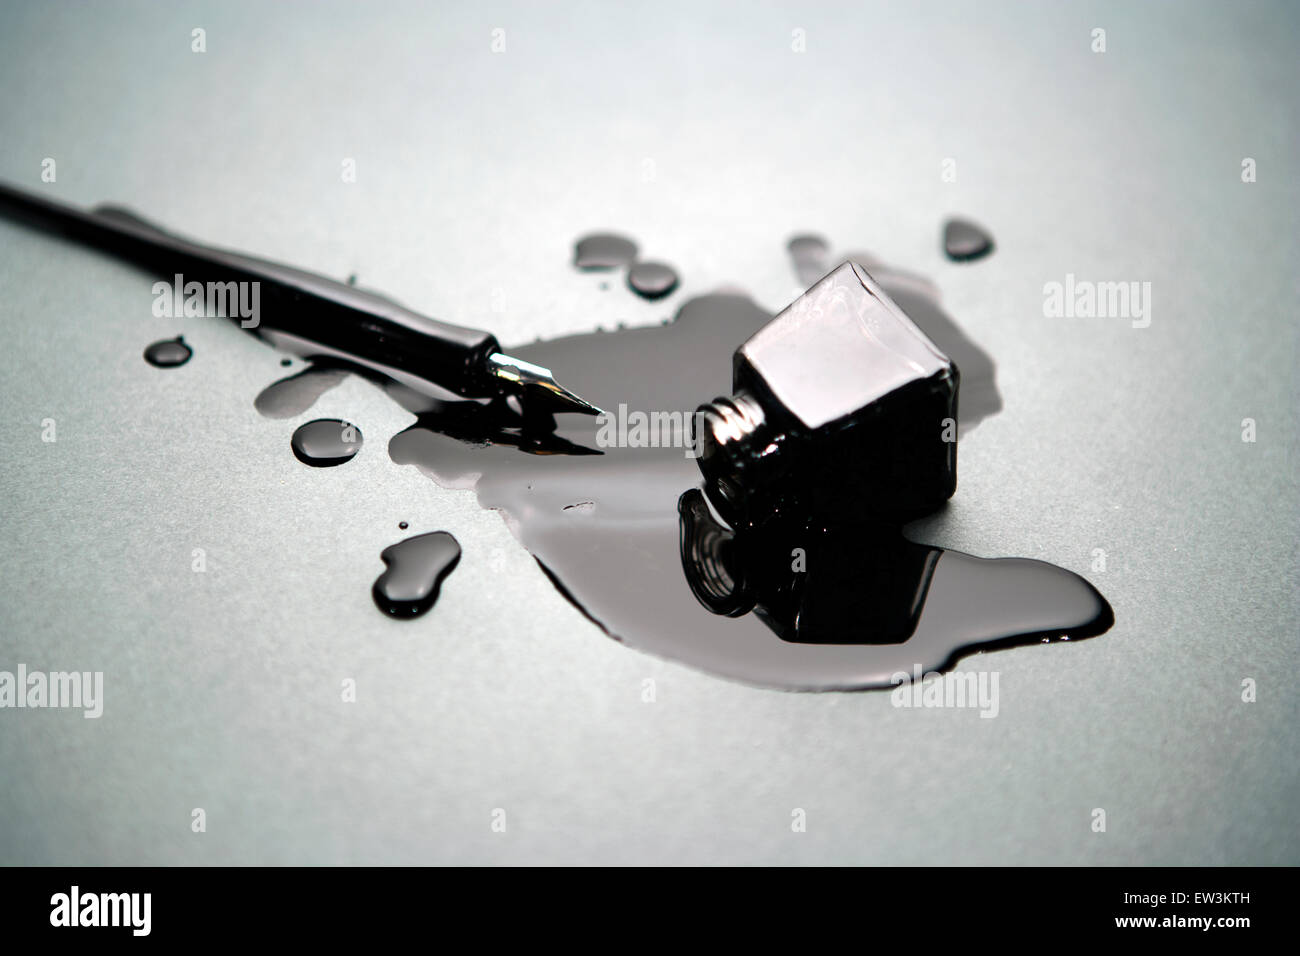 Ink Bottle Spill High Resolution Stock Photography and Images - Alamy